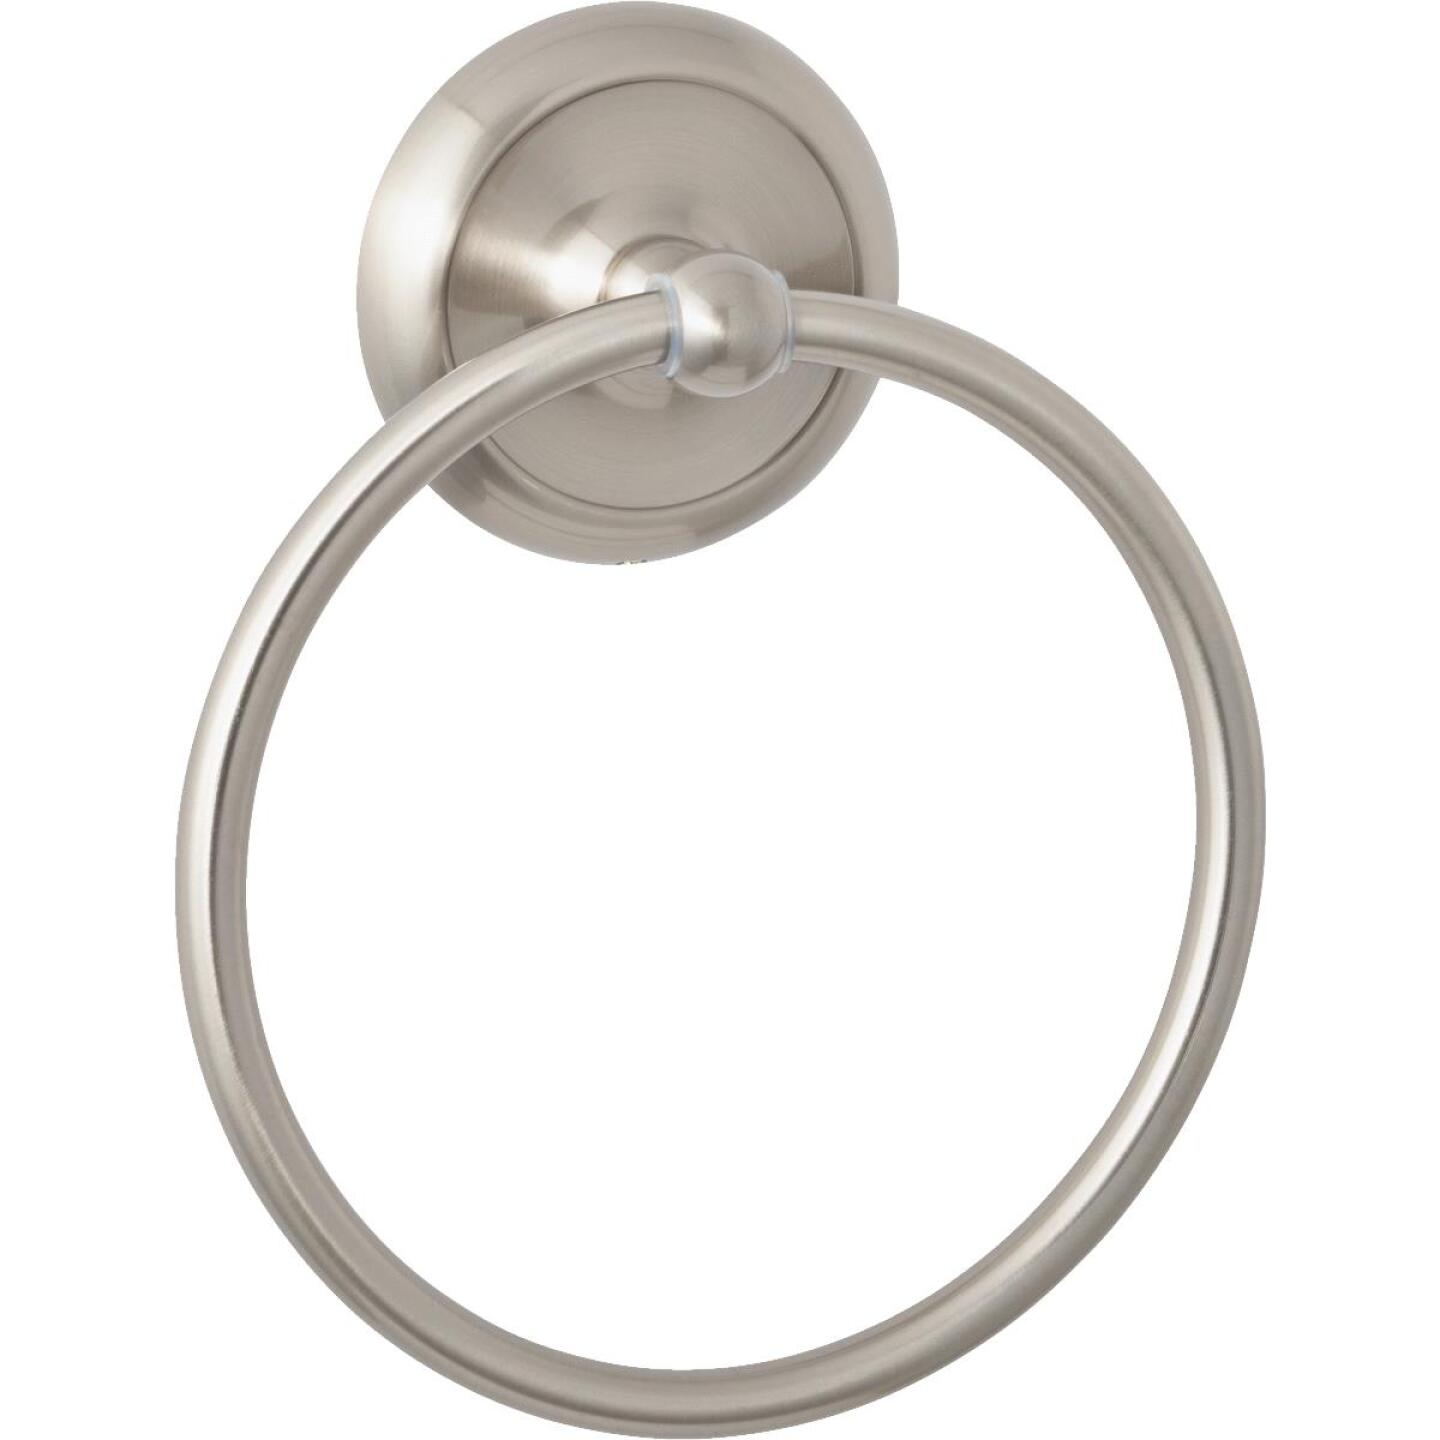 Home Impressions Brushed Nickel Towel Ring Image 1